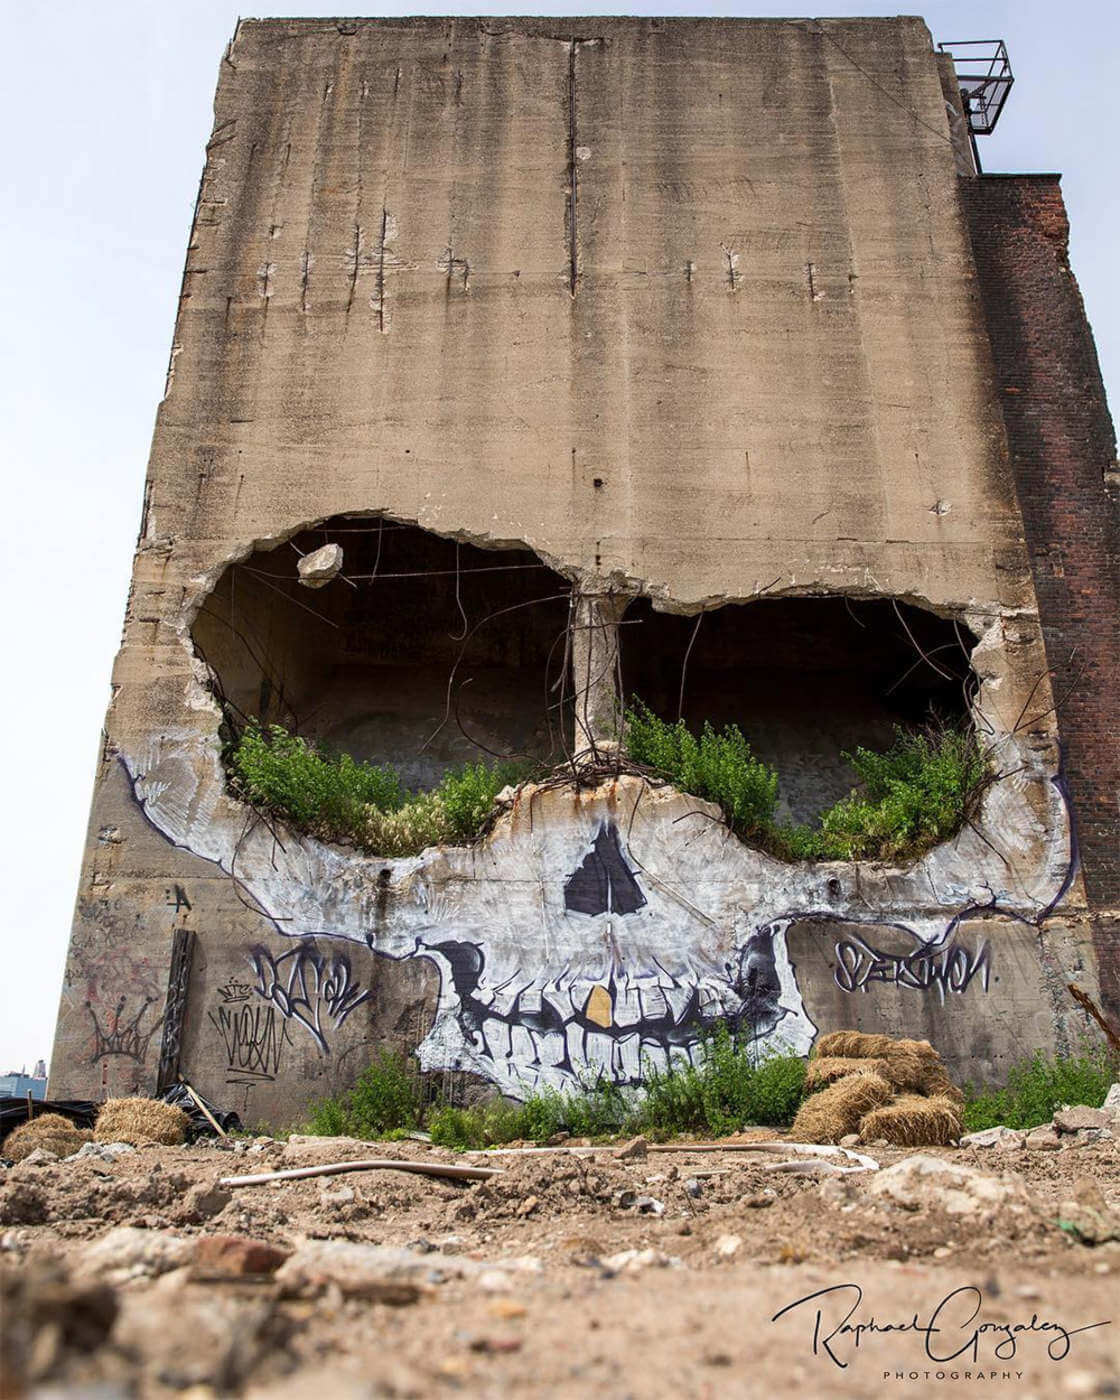 top-100-street-art-2017-best-of-murals-graffiti-skull-head.jpg